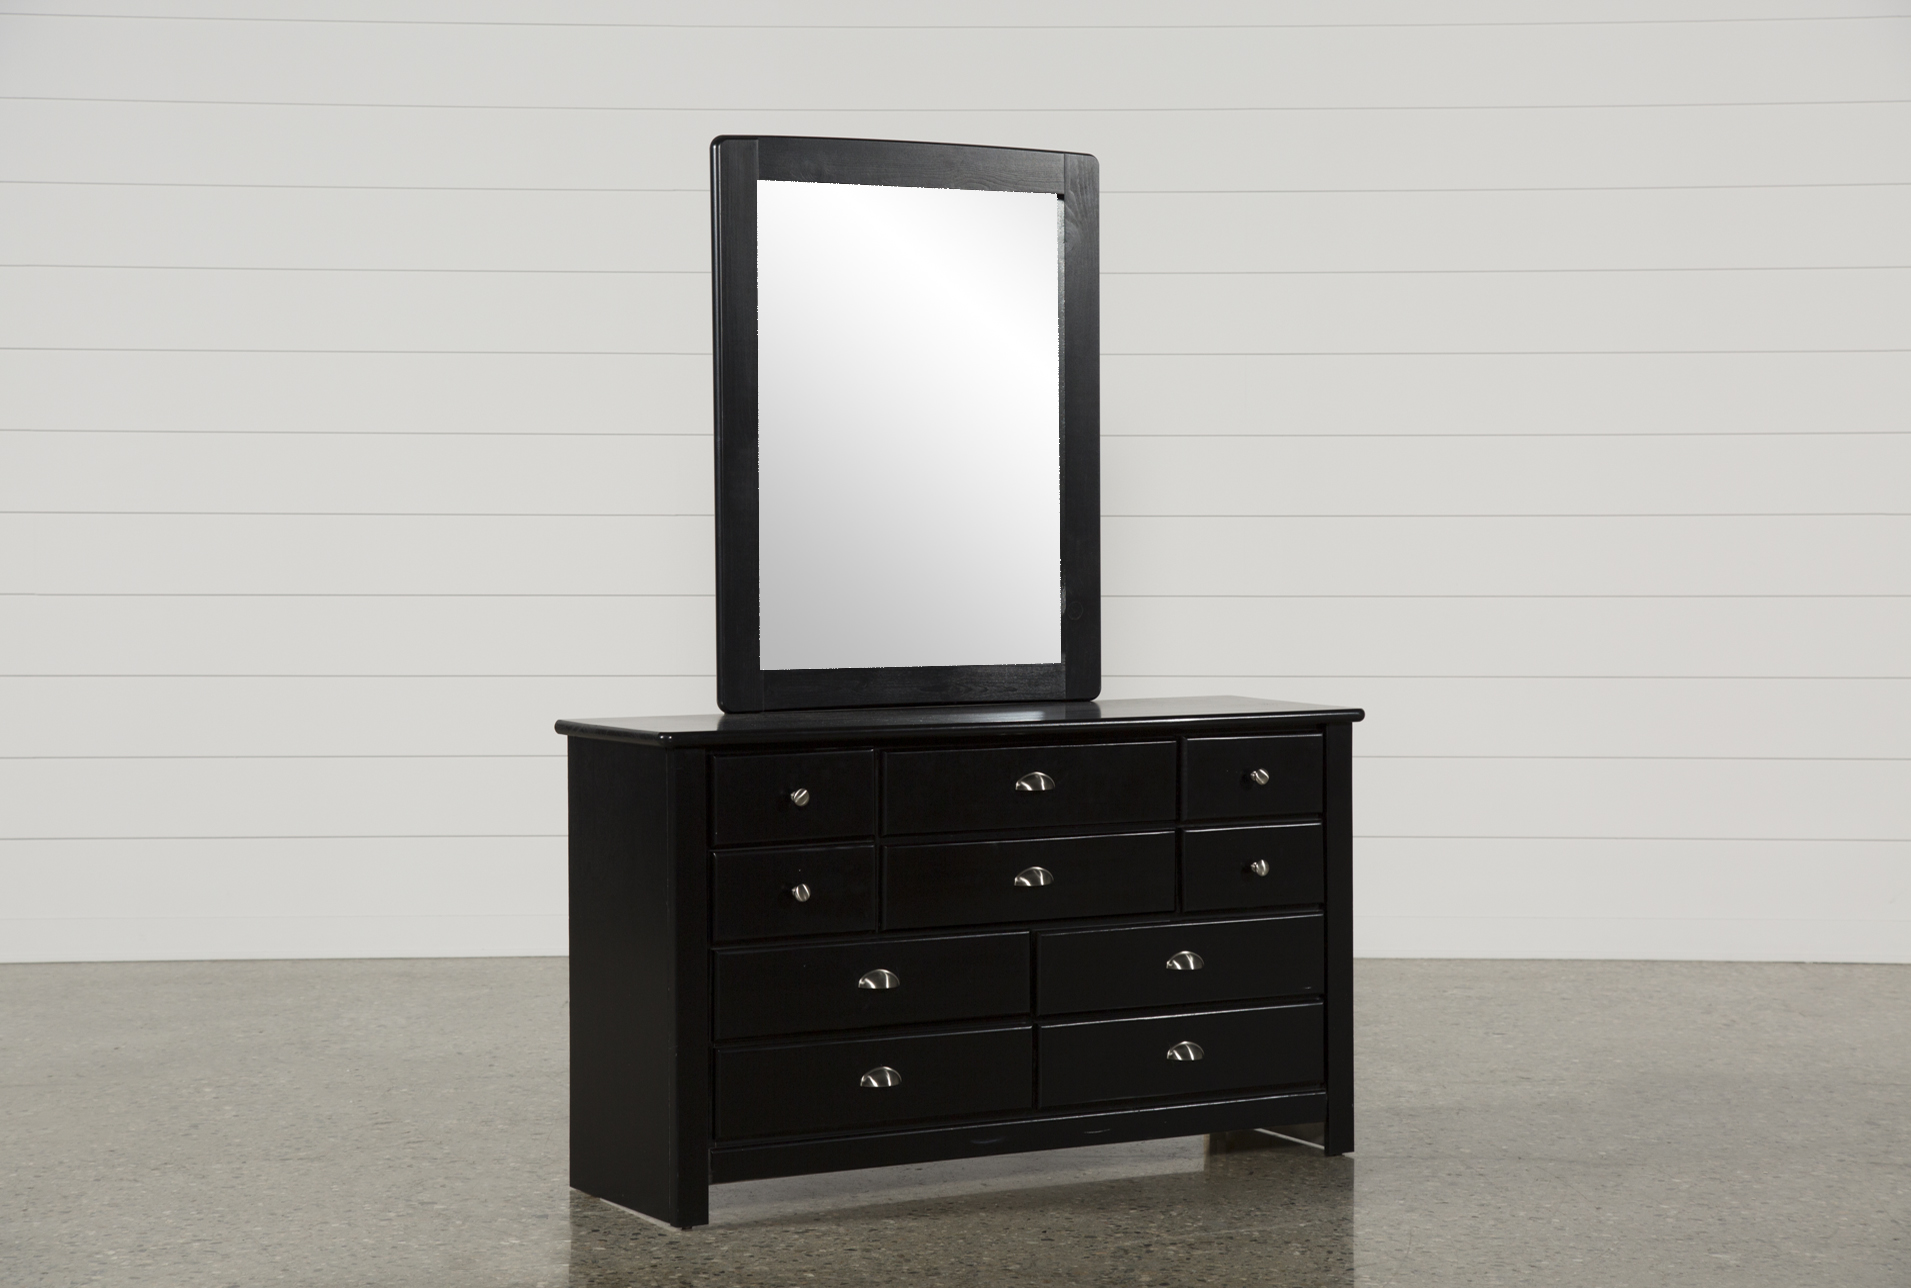 Lovely Summit Black Dresser/Mirror